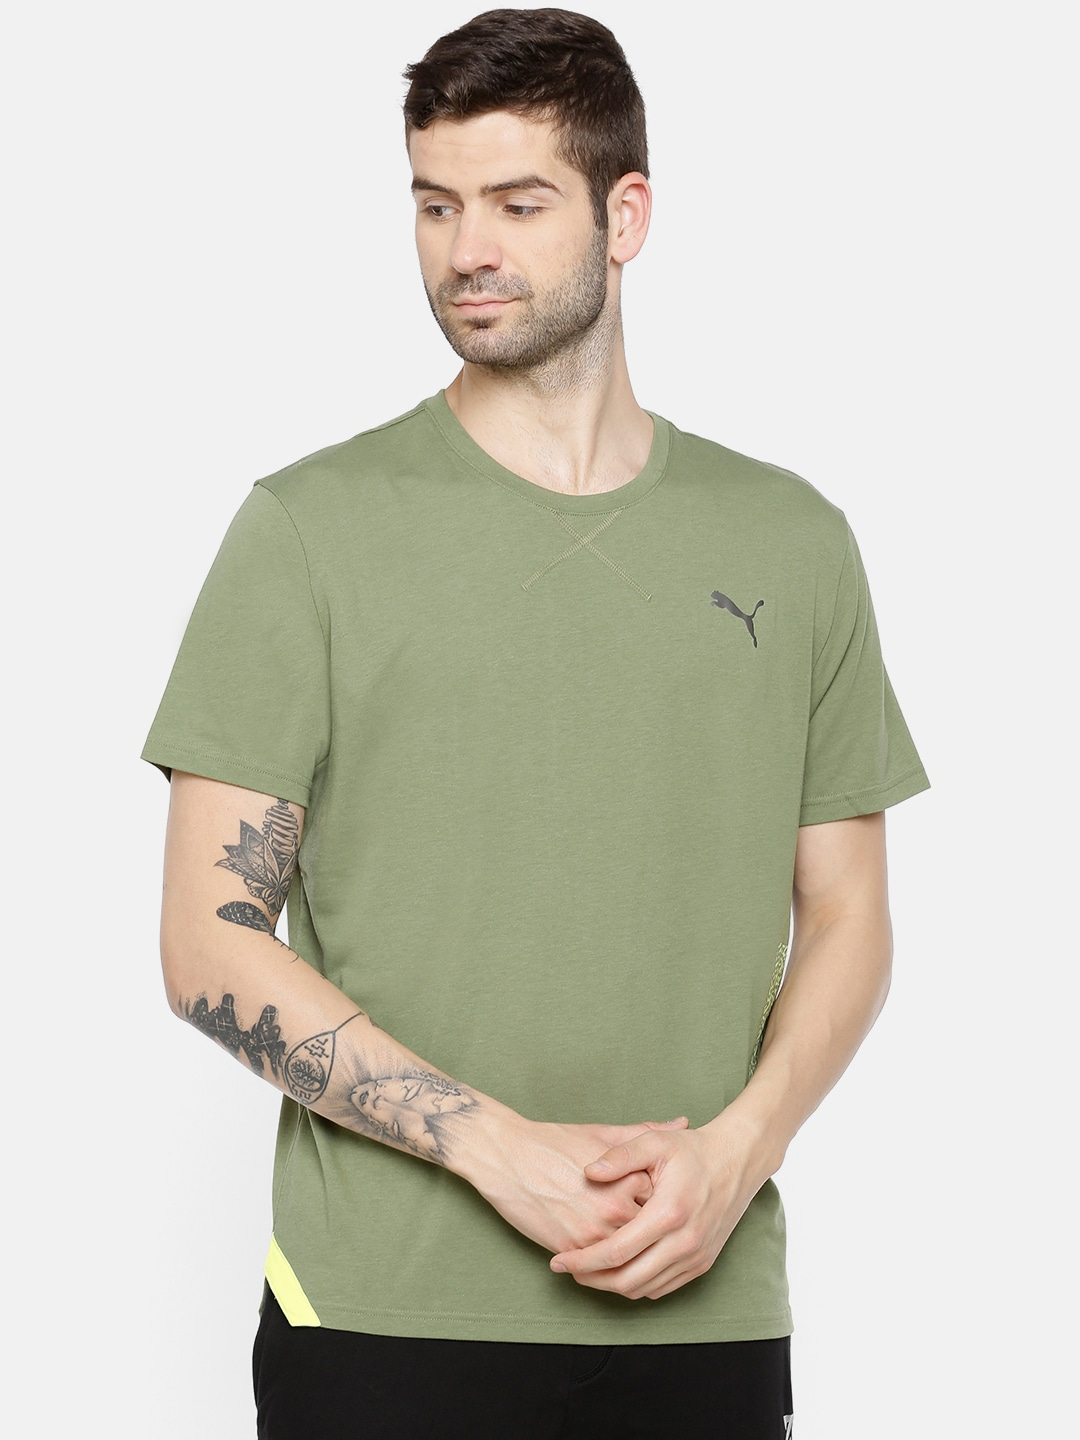 96c94c06ee2 T-Shirts - Buy TShirt For Men, Women & Kids Online in India | Myntra